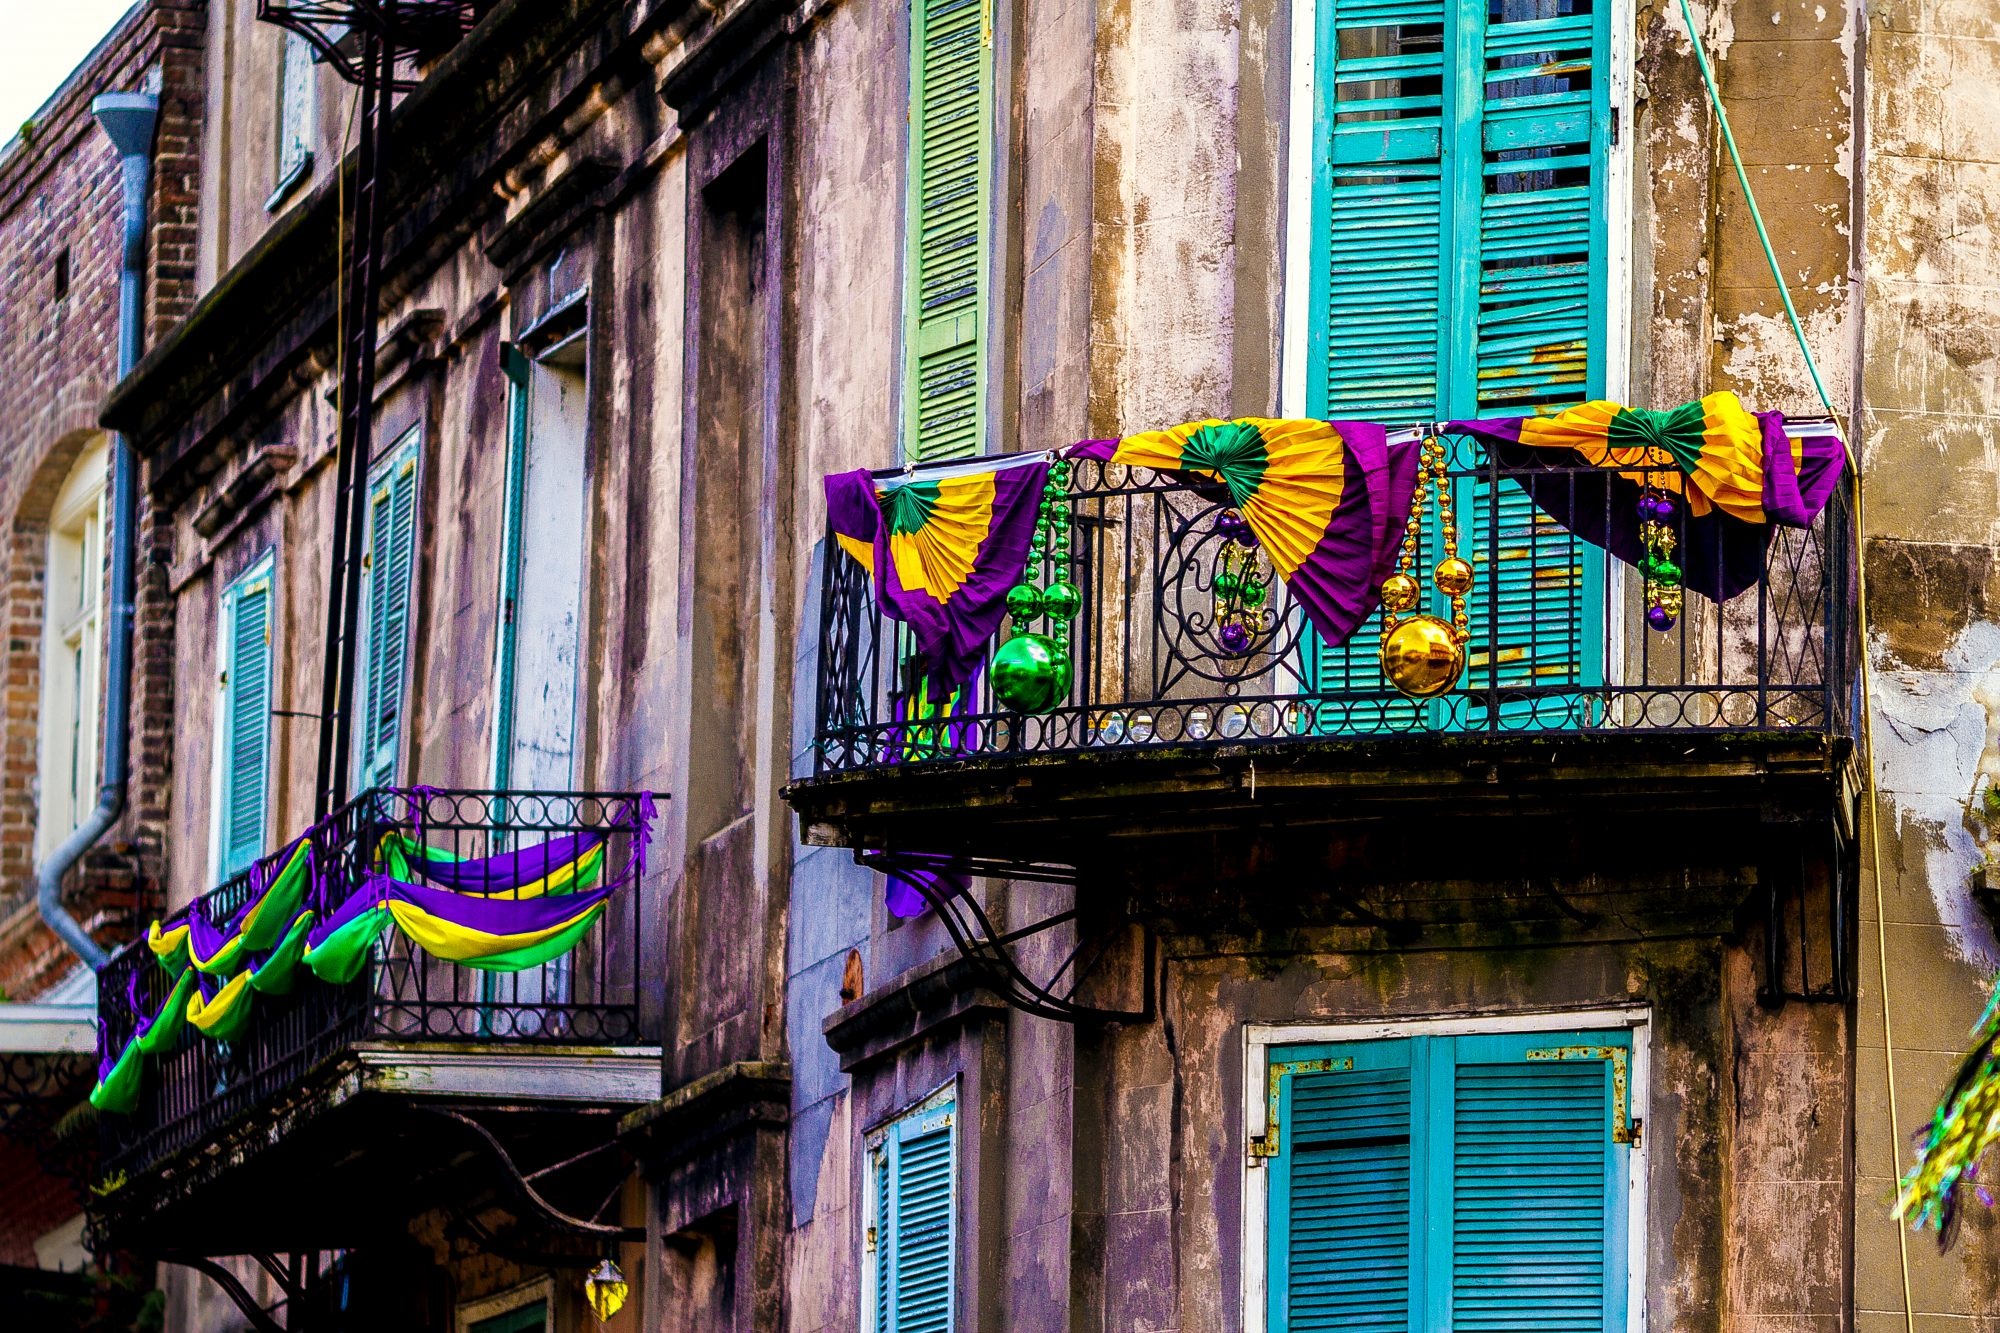 Decked Out for Mardi Gras